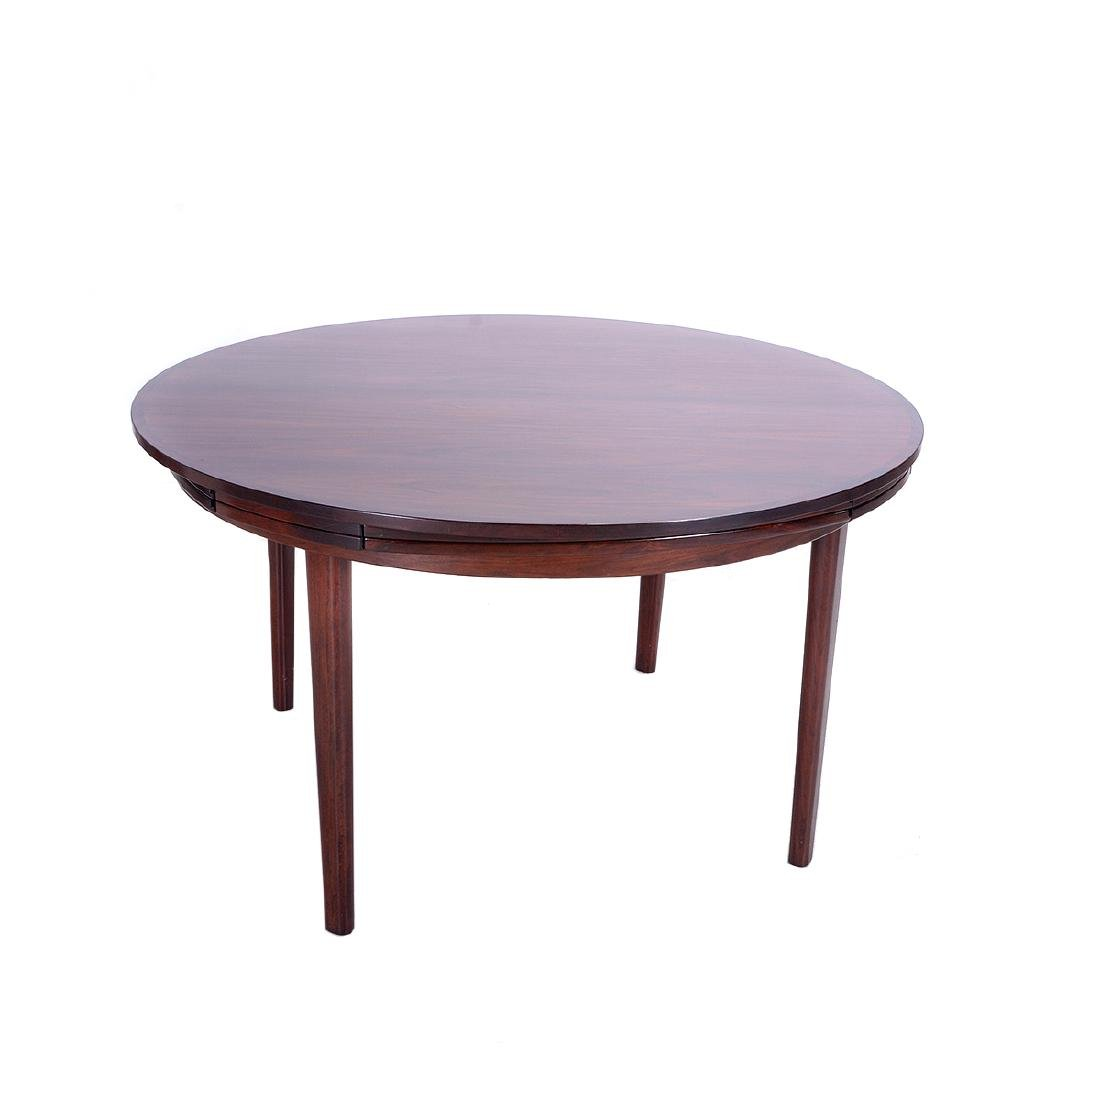 Dyrlund Rosewood Extension Dining Table - 4